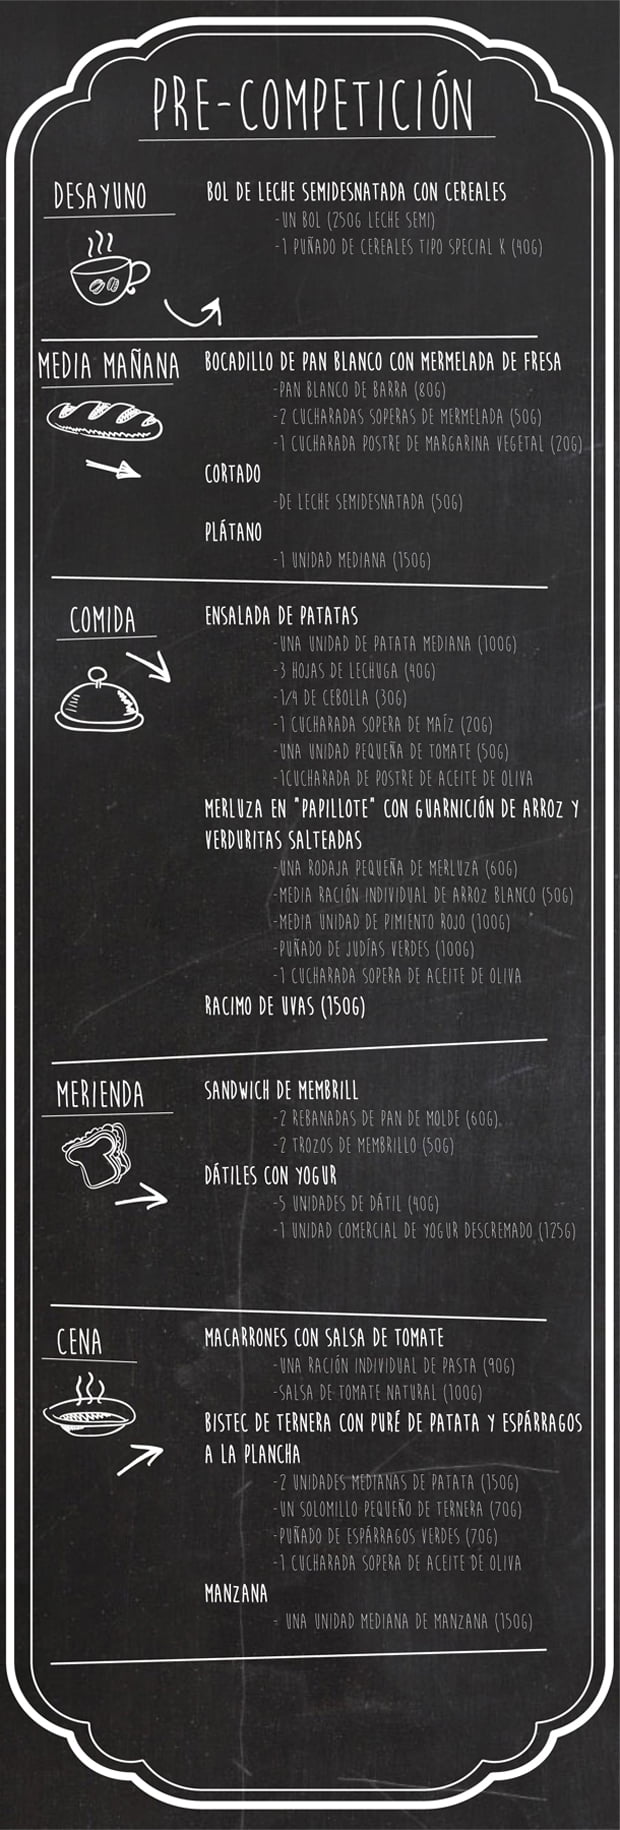 Menu precompetición